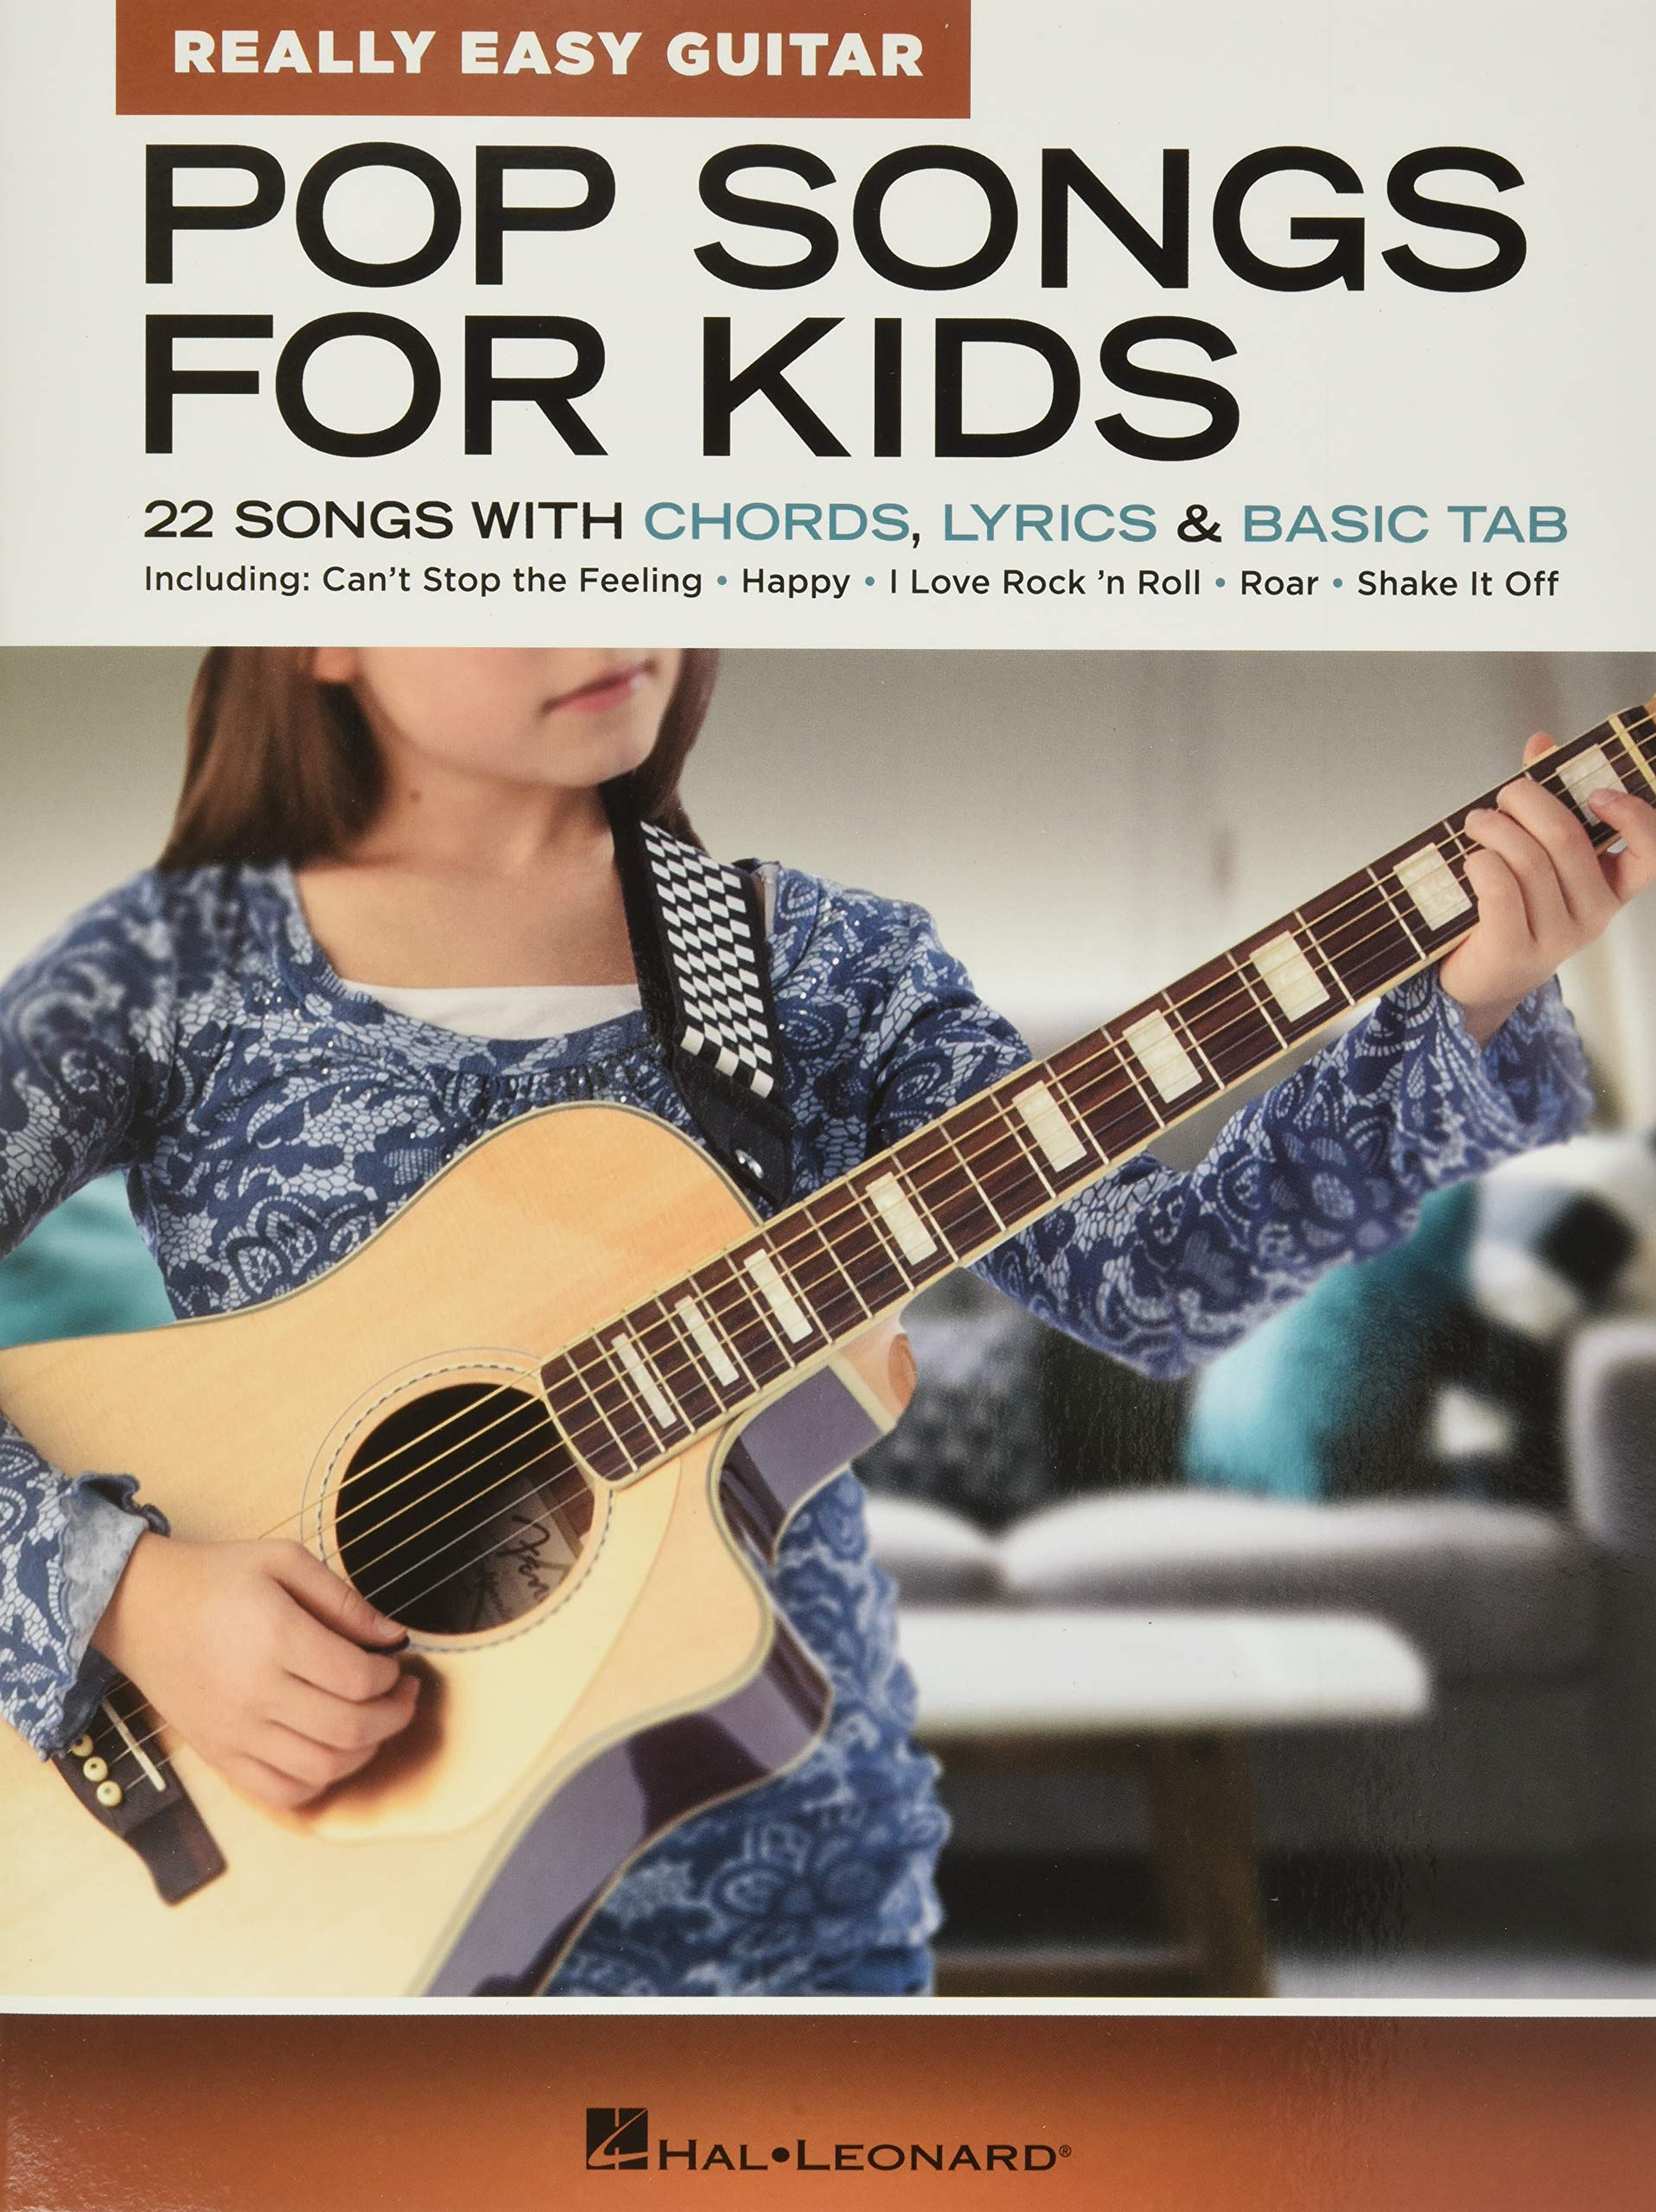 Pop Songs for Kids   Really Easy Guitar Series 15 Songs with ...